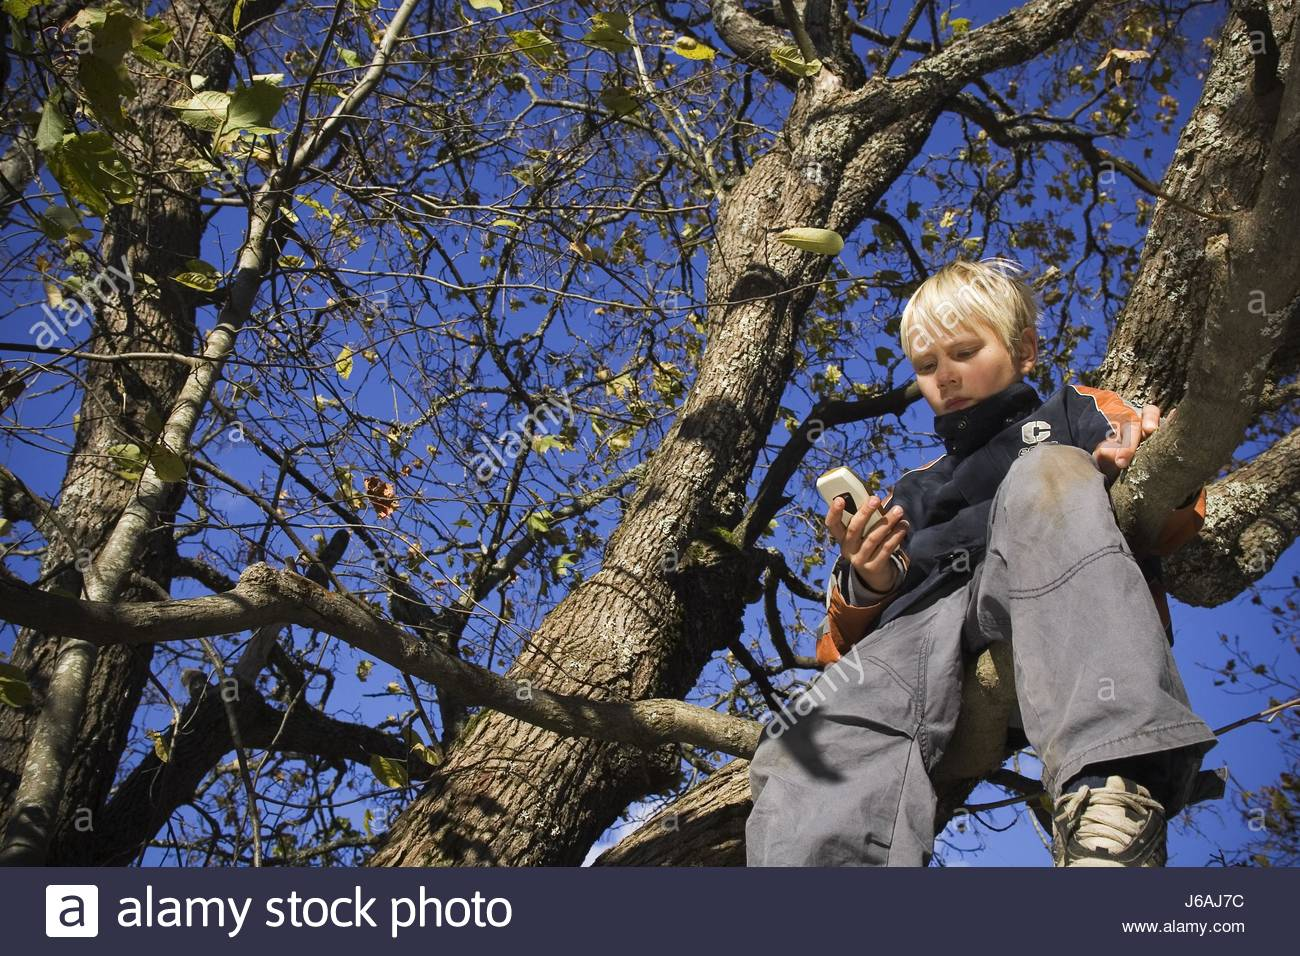 telephone phone cellphone mobile mobile phone tree shoes branches ...